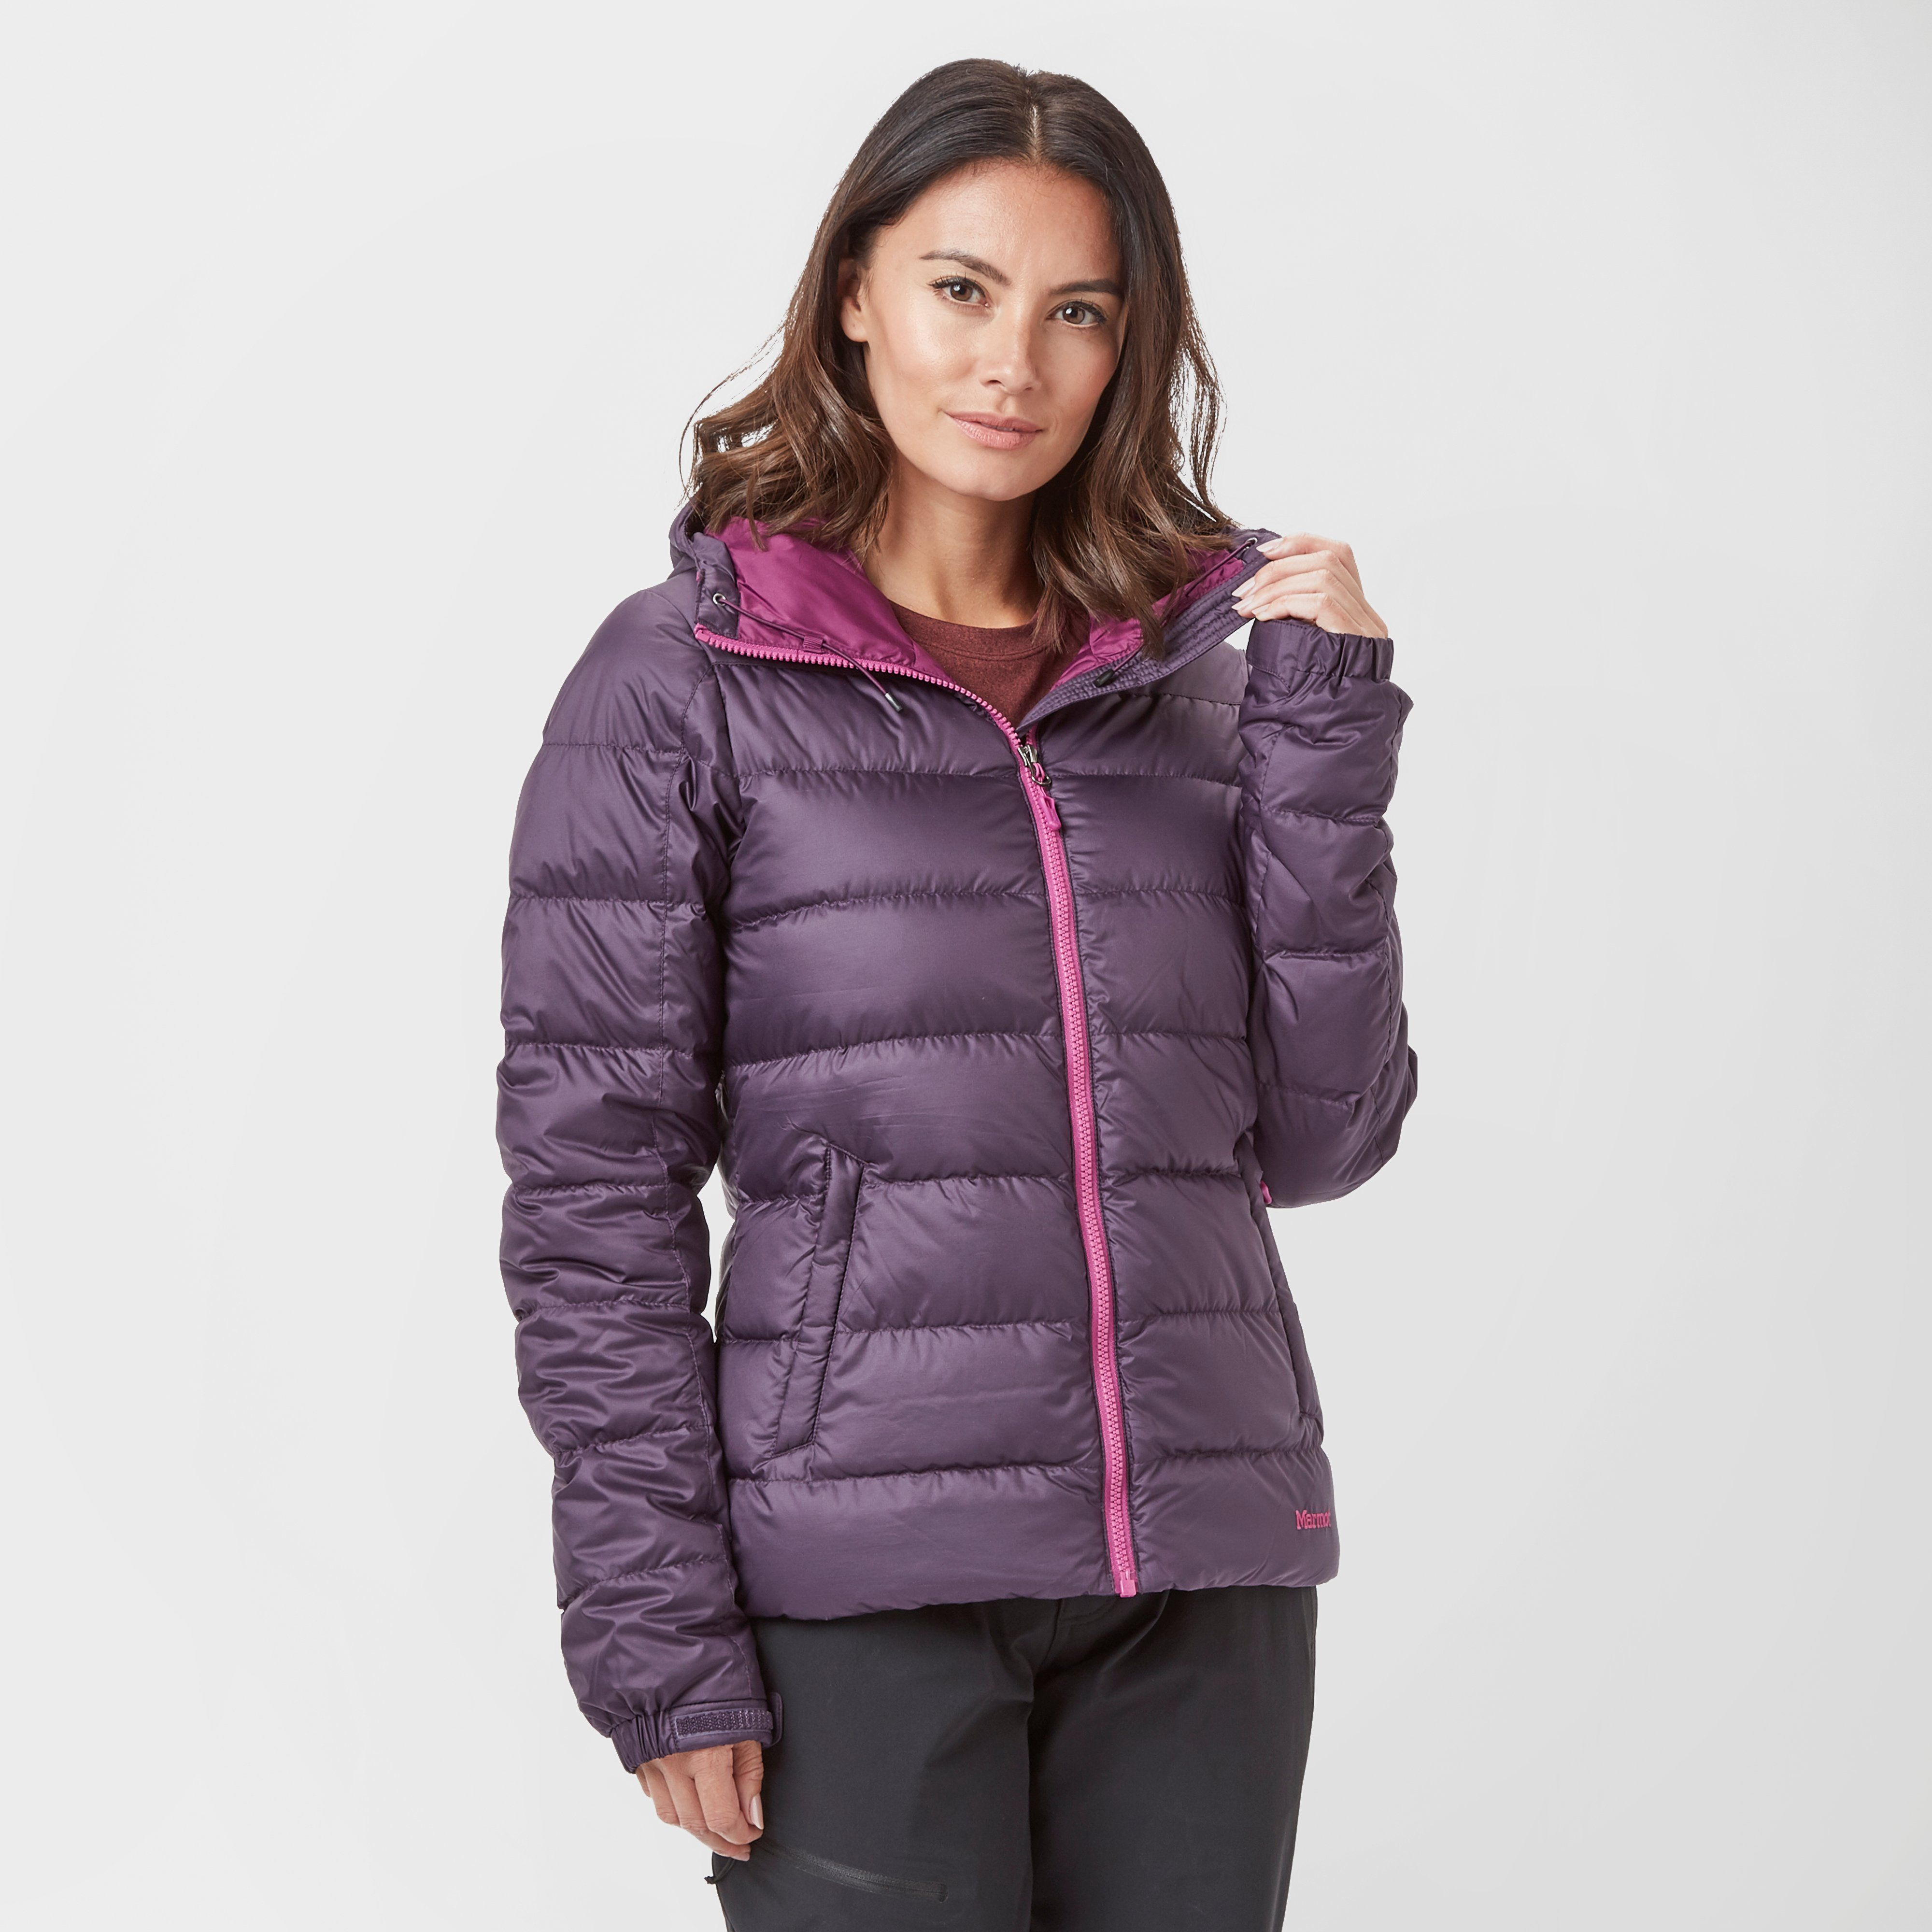 MARMOT Women's Guides Insulated Jacket